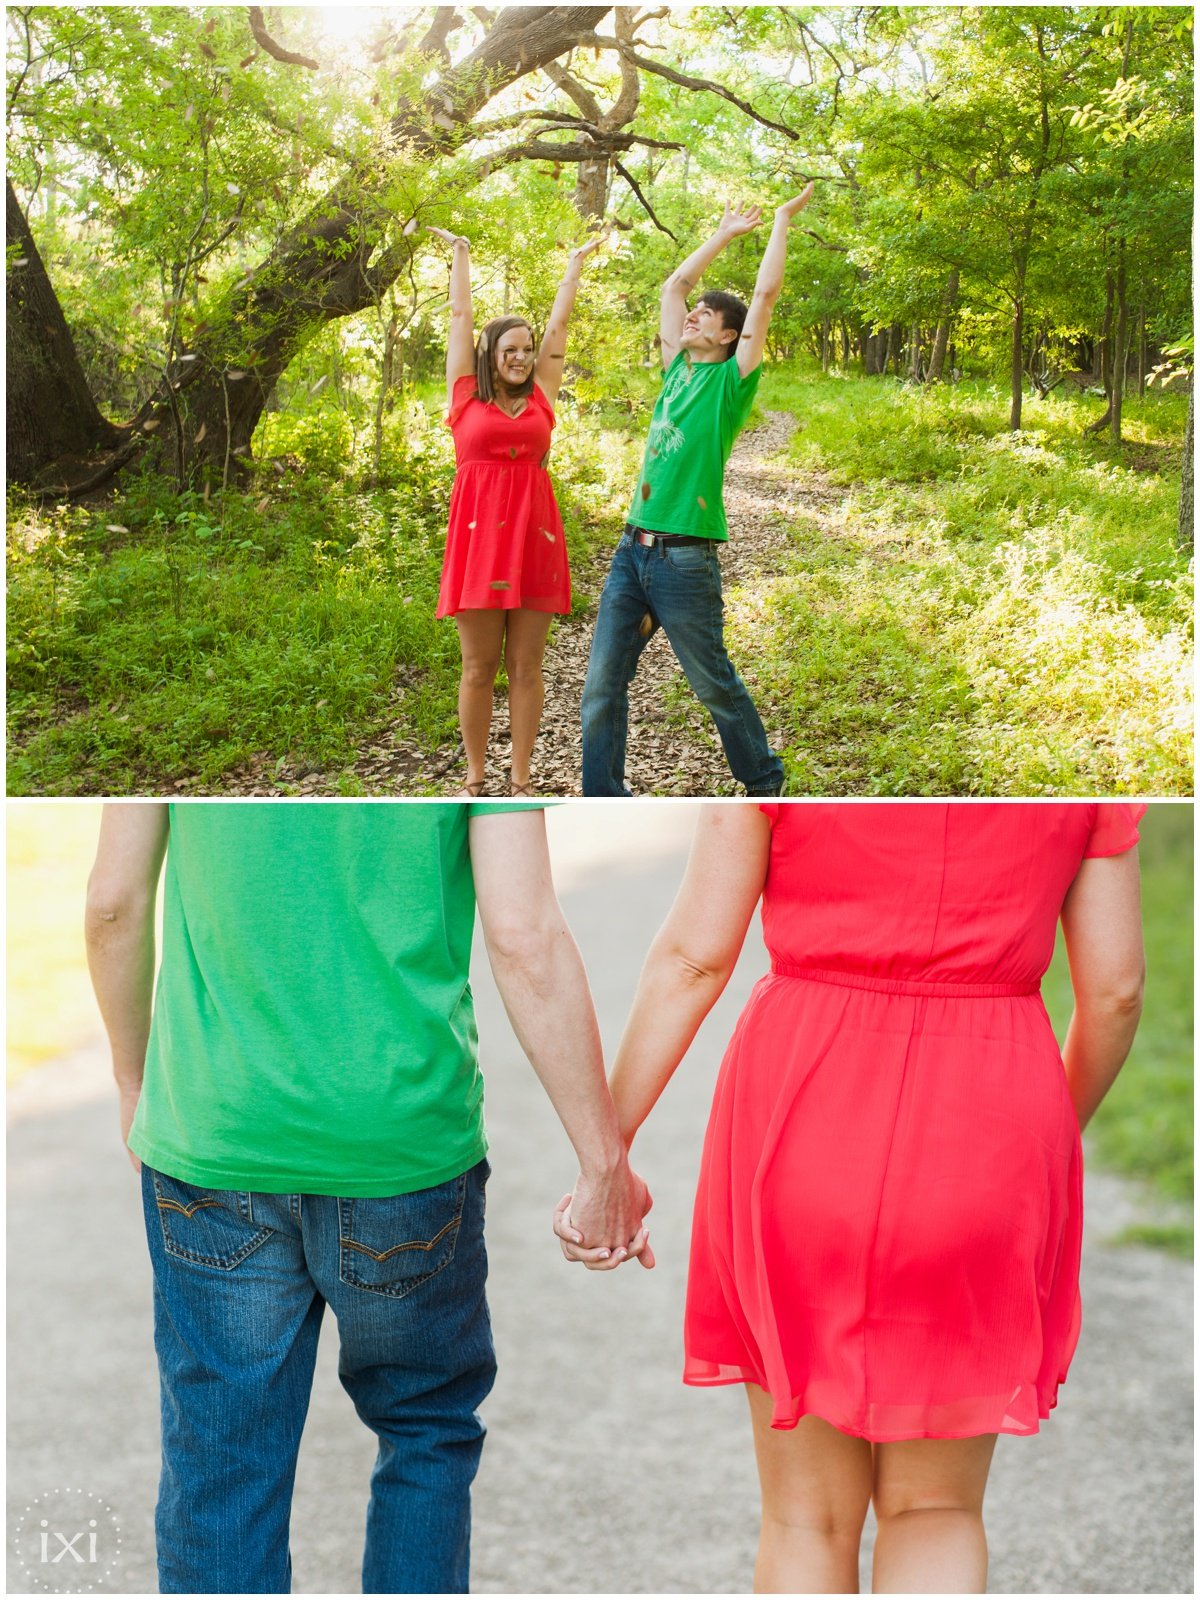 mary-moore-searight-park-austin-engagement-photos_0009